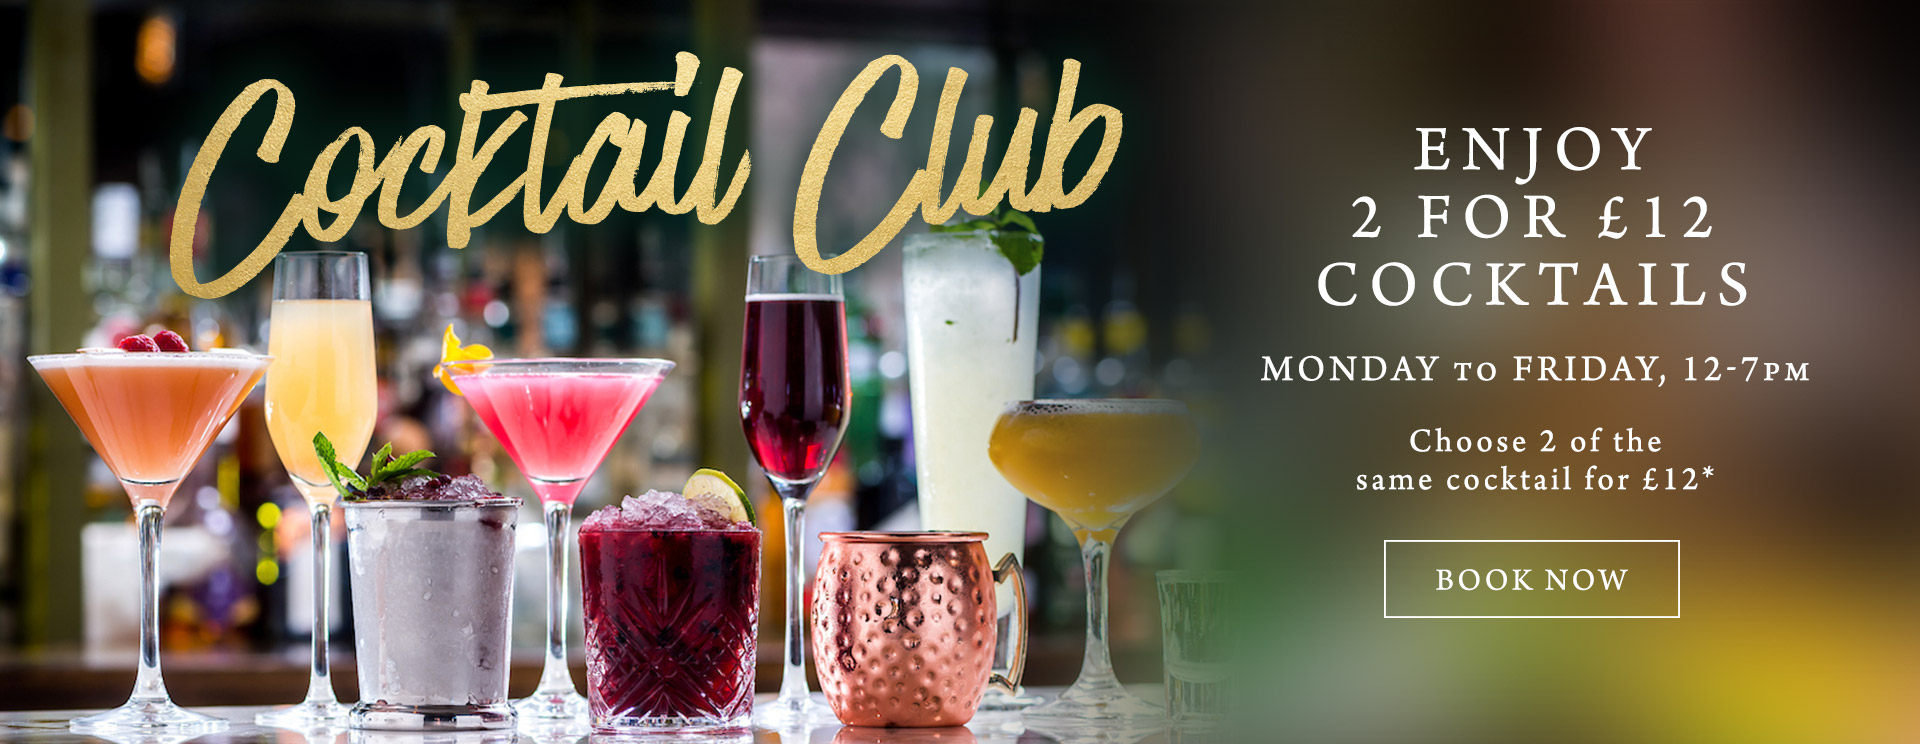 2 for £12 cocktails at The Apple Tree